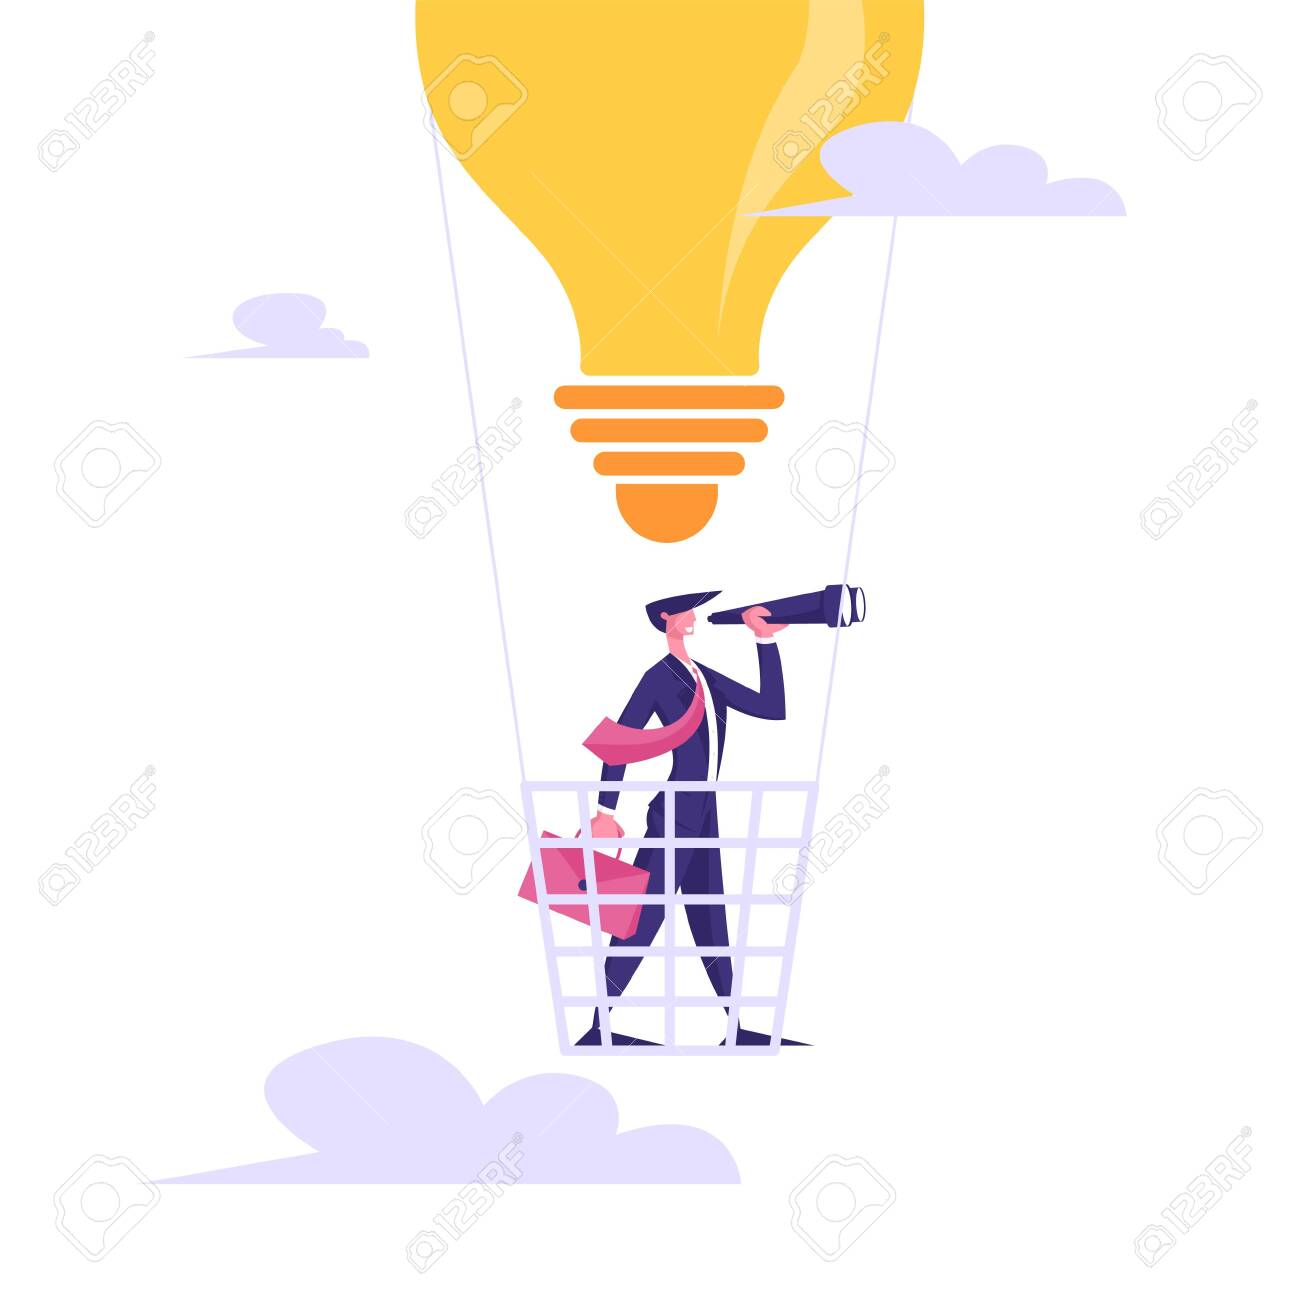 Businessman with Briefcase Flying on Air Balloon in Shape of Light Bulb Watching to Spyglass. Business Vision, Forecast Prediction, Success Planning Future Strategy Cartoon Flat Vector Illustration - 129762843